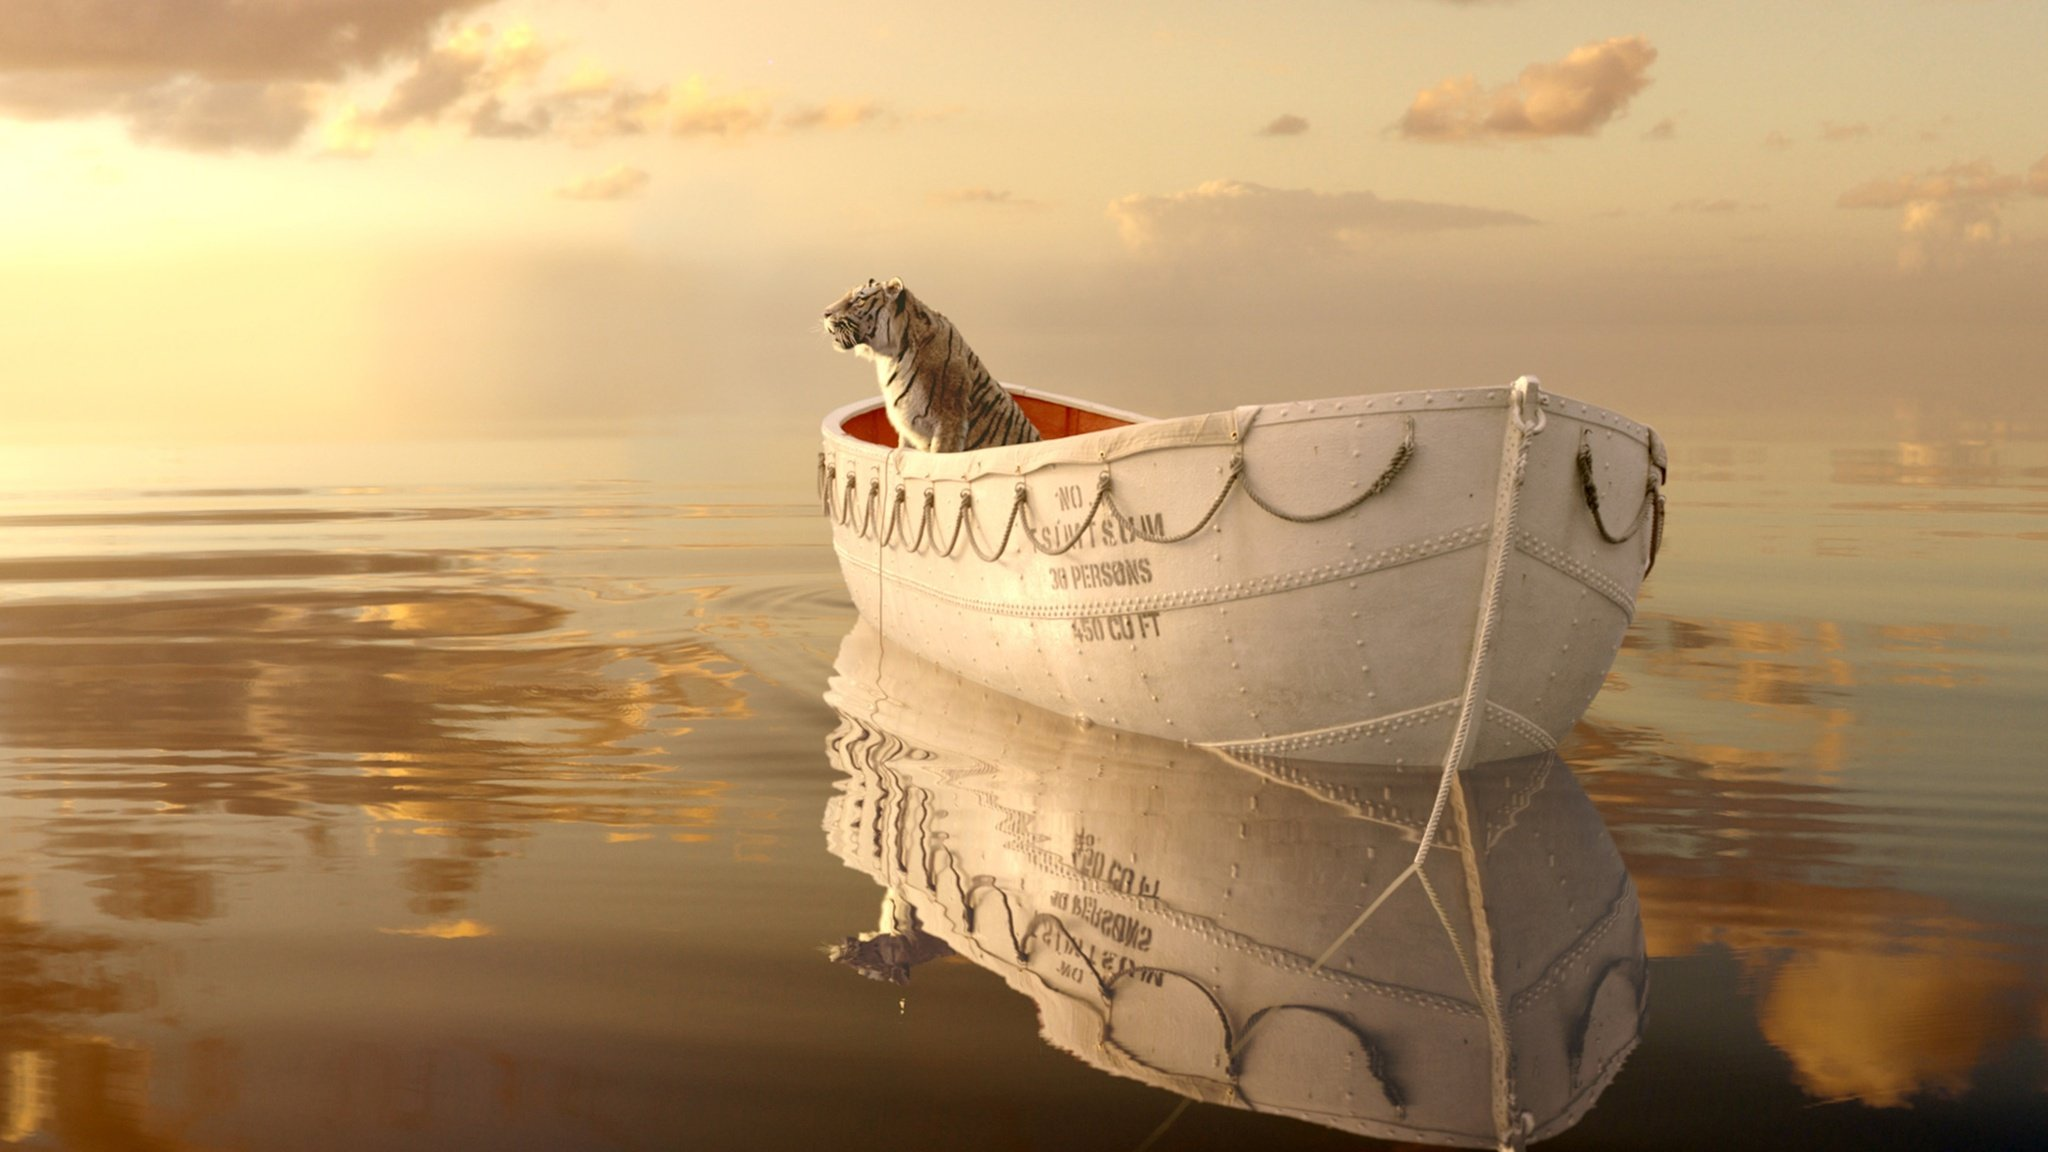 life-of-pi-2012-picture-1.jpg